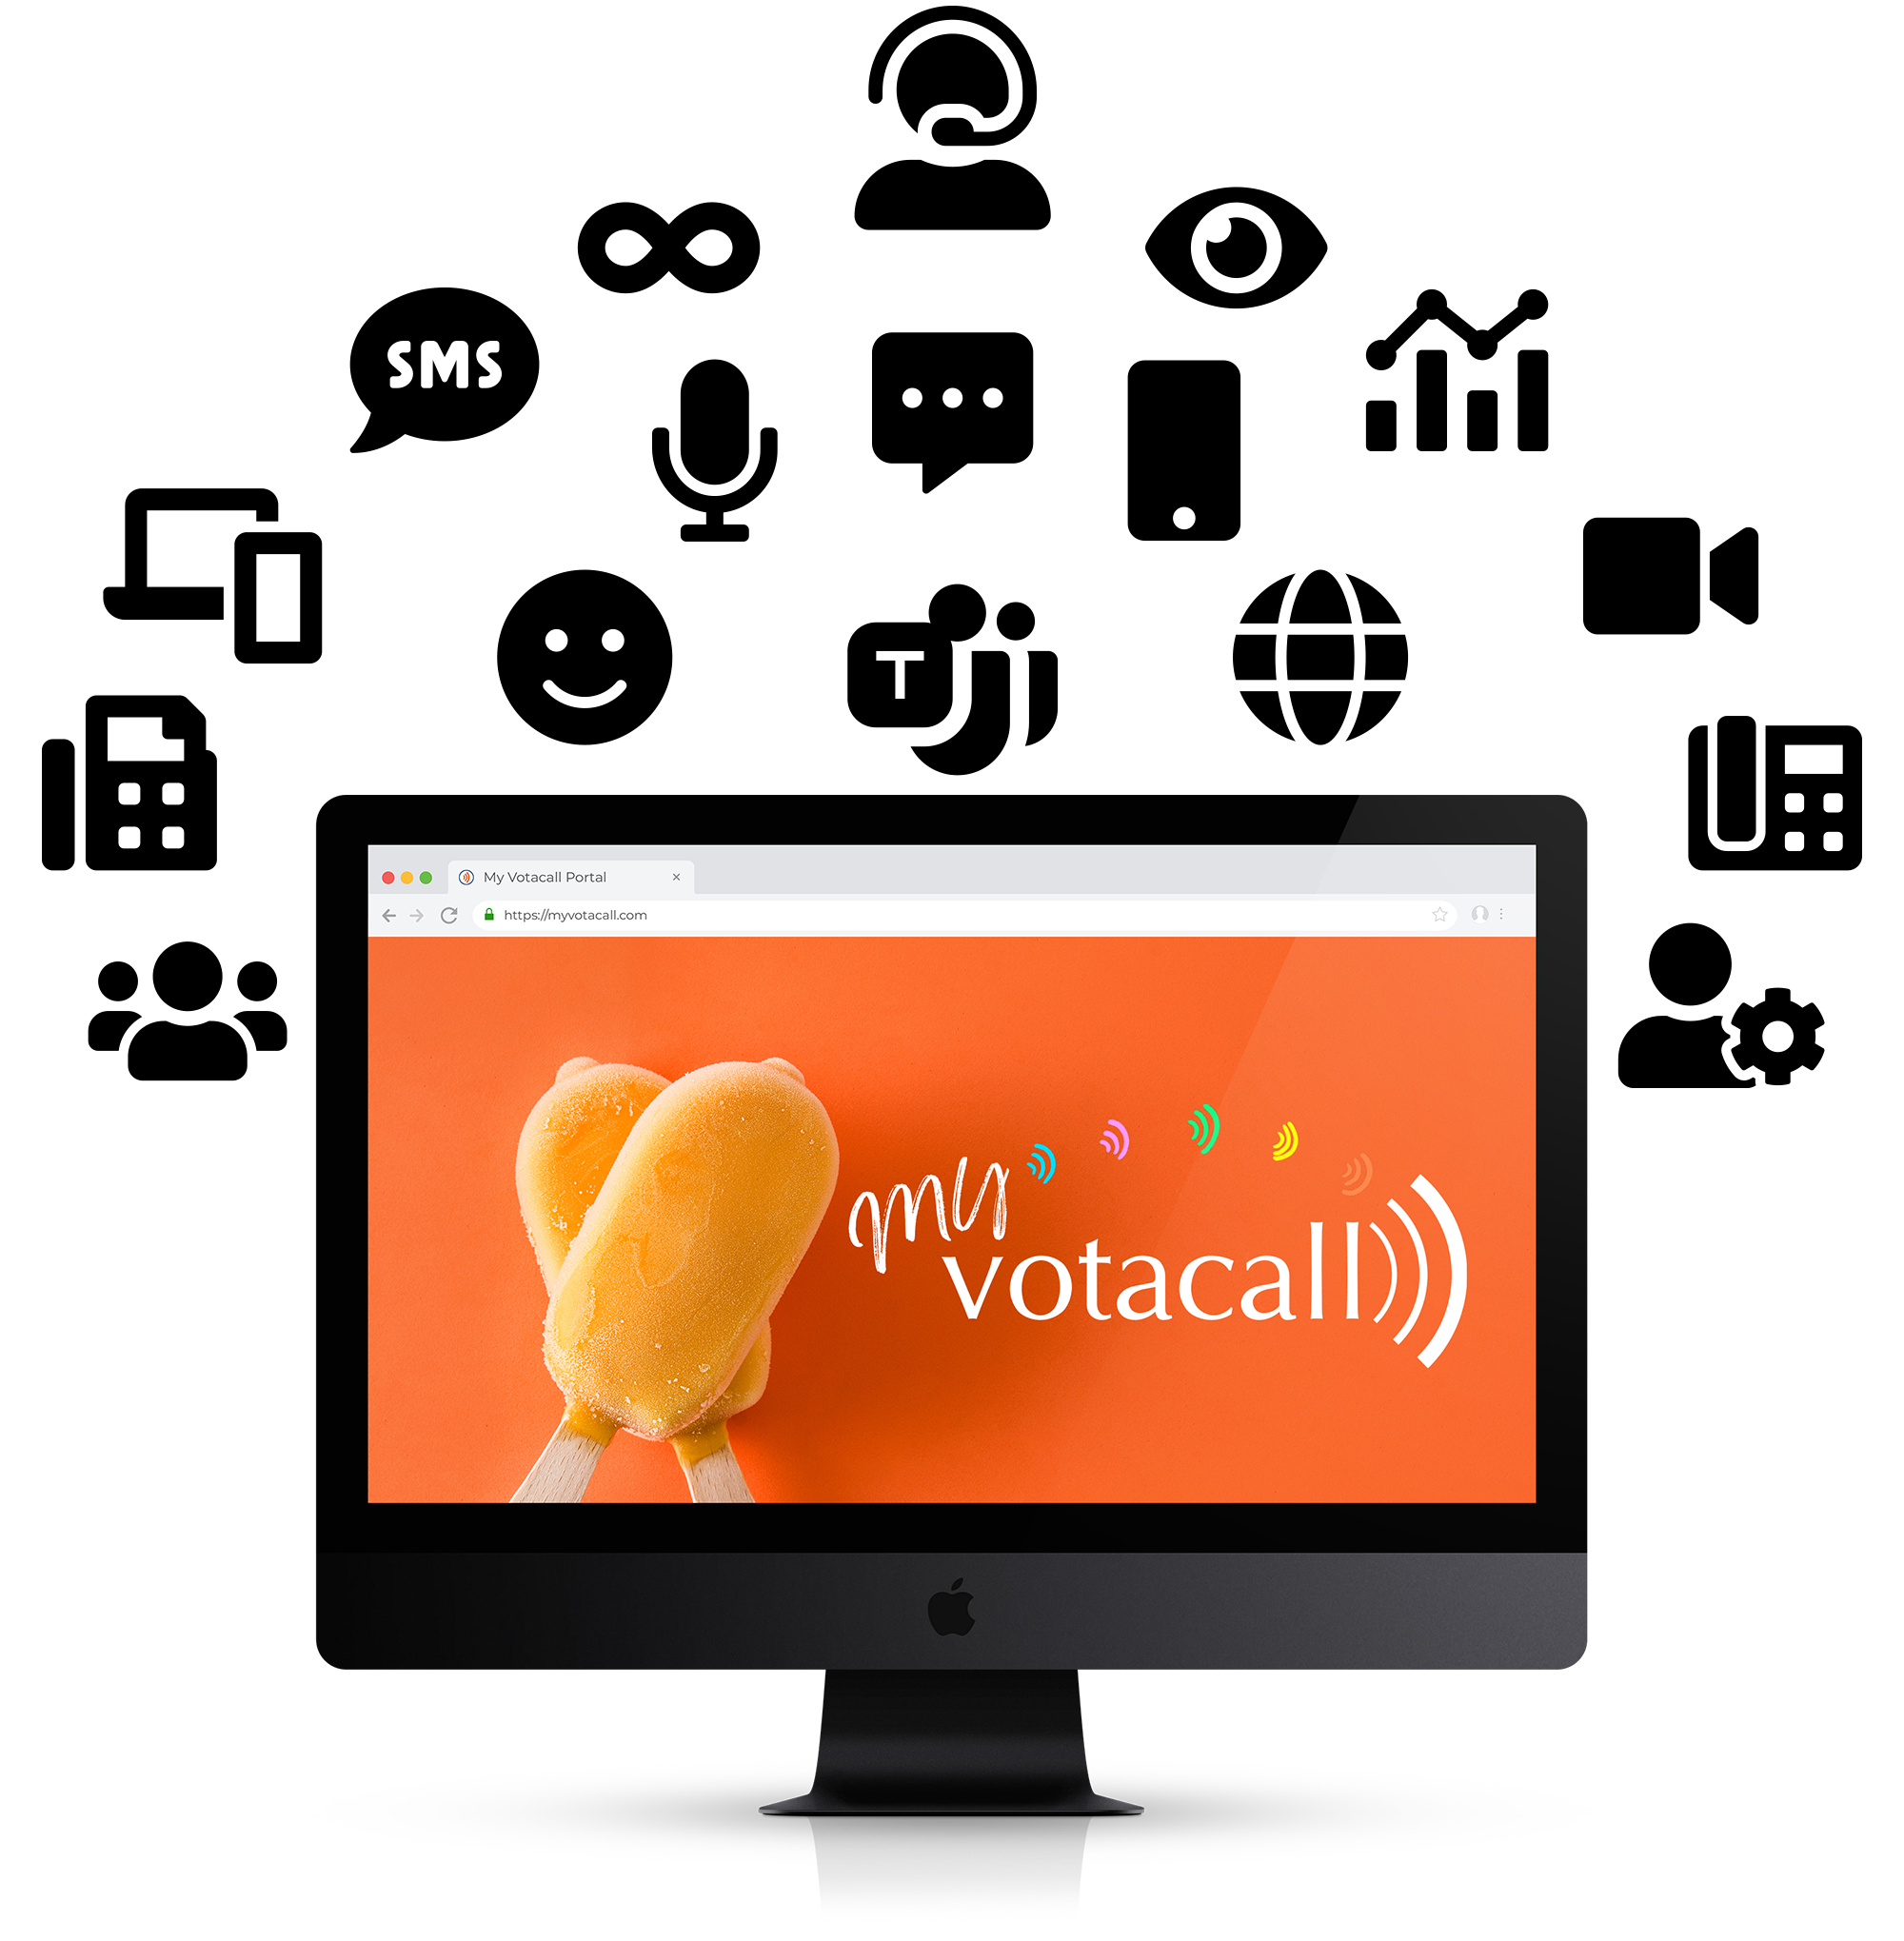 my-votacall-access-is-everything-popsicle